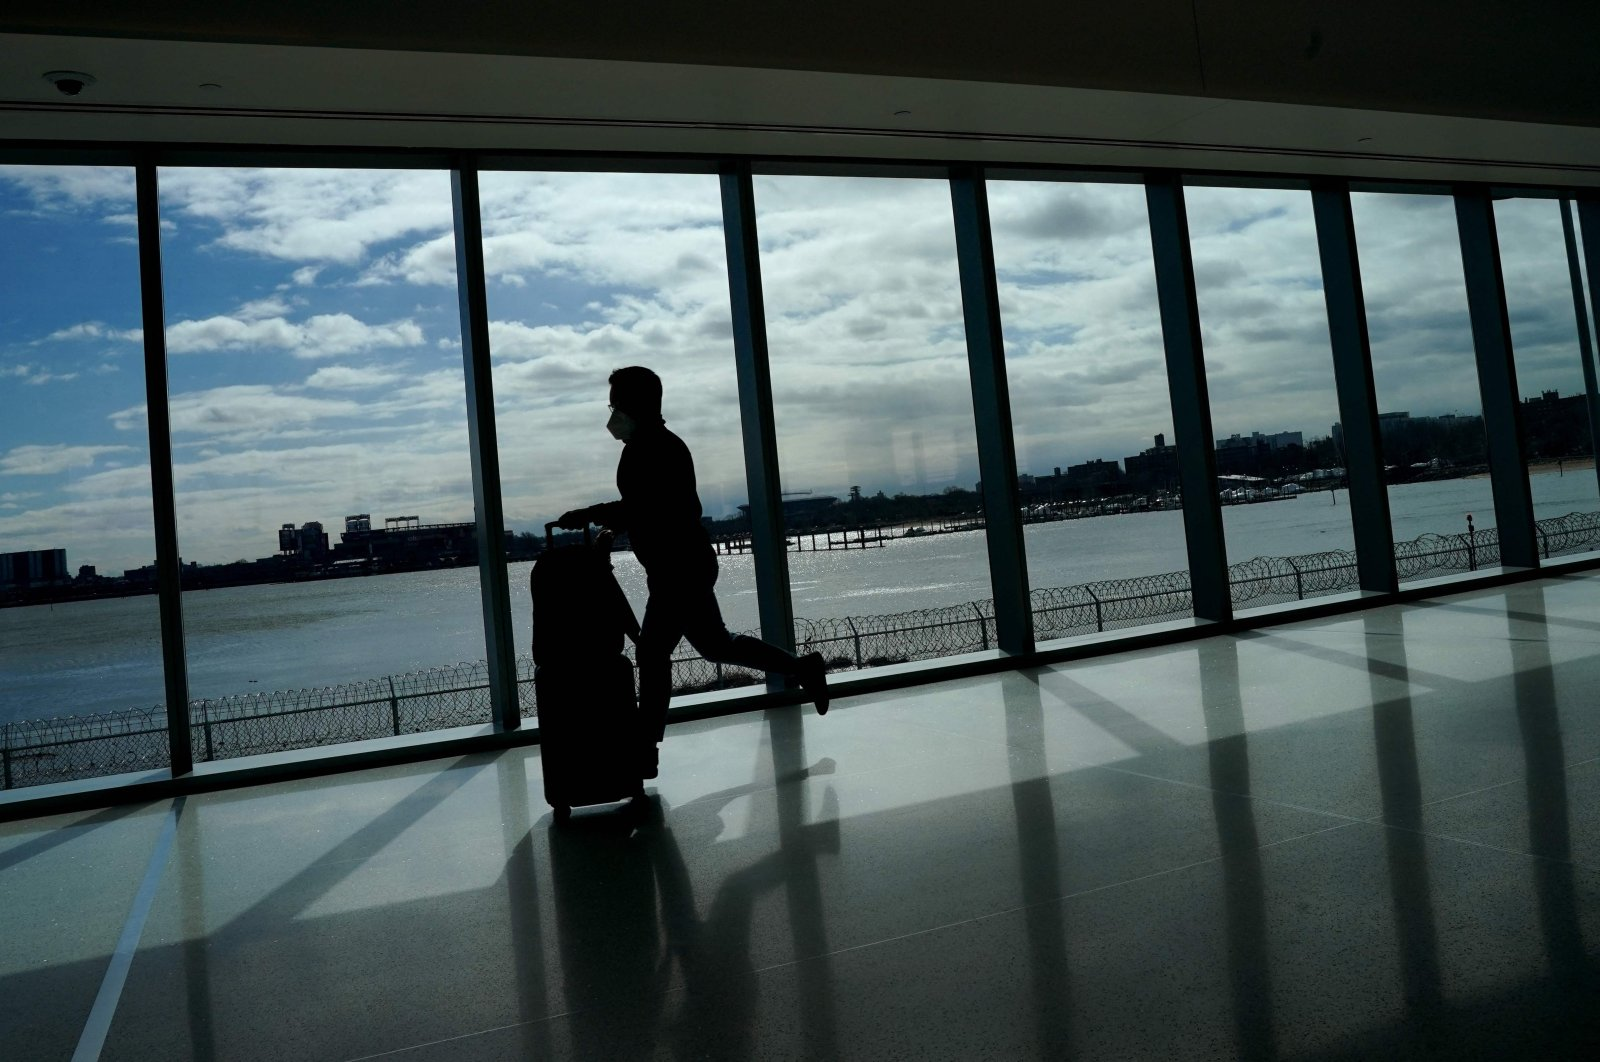 A person runs through the newly renovated Delta Terminal D at LaGuardia Airport in New York, U.S., March 6, 2021. (AFP Photo)